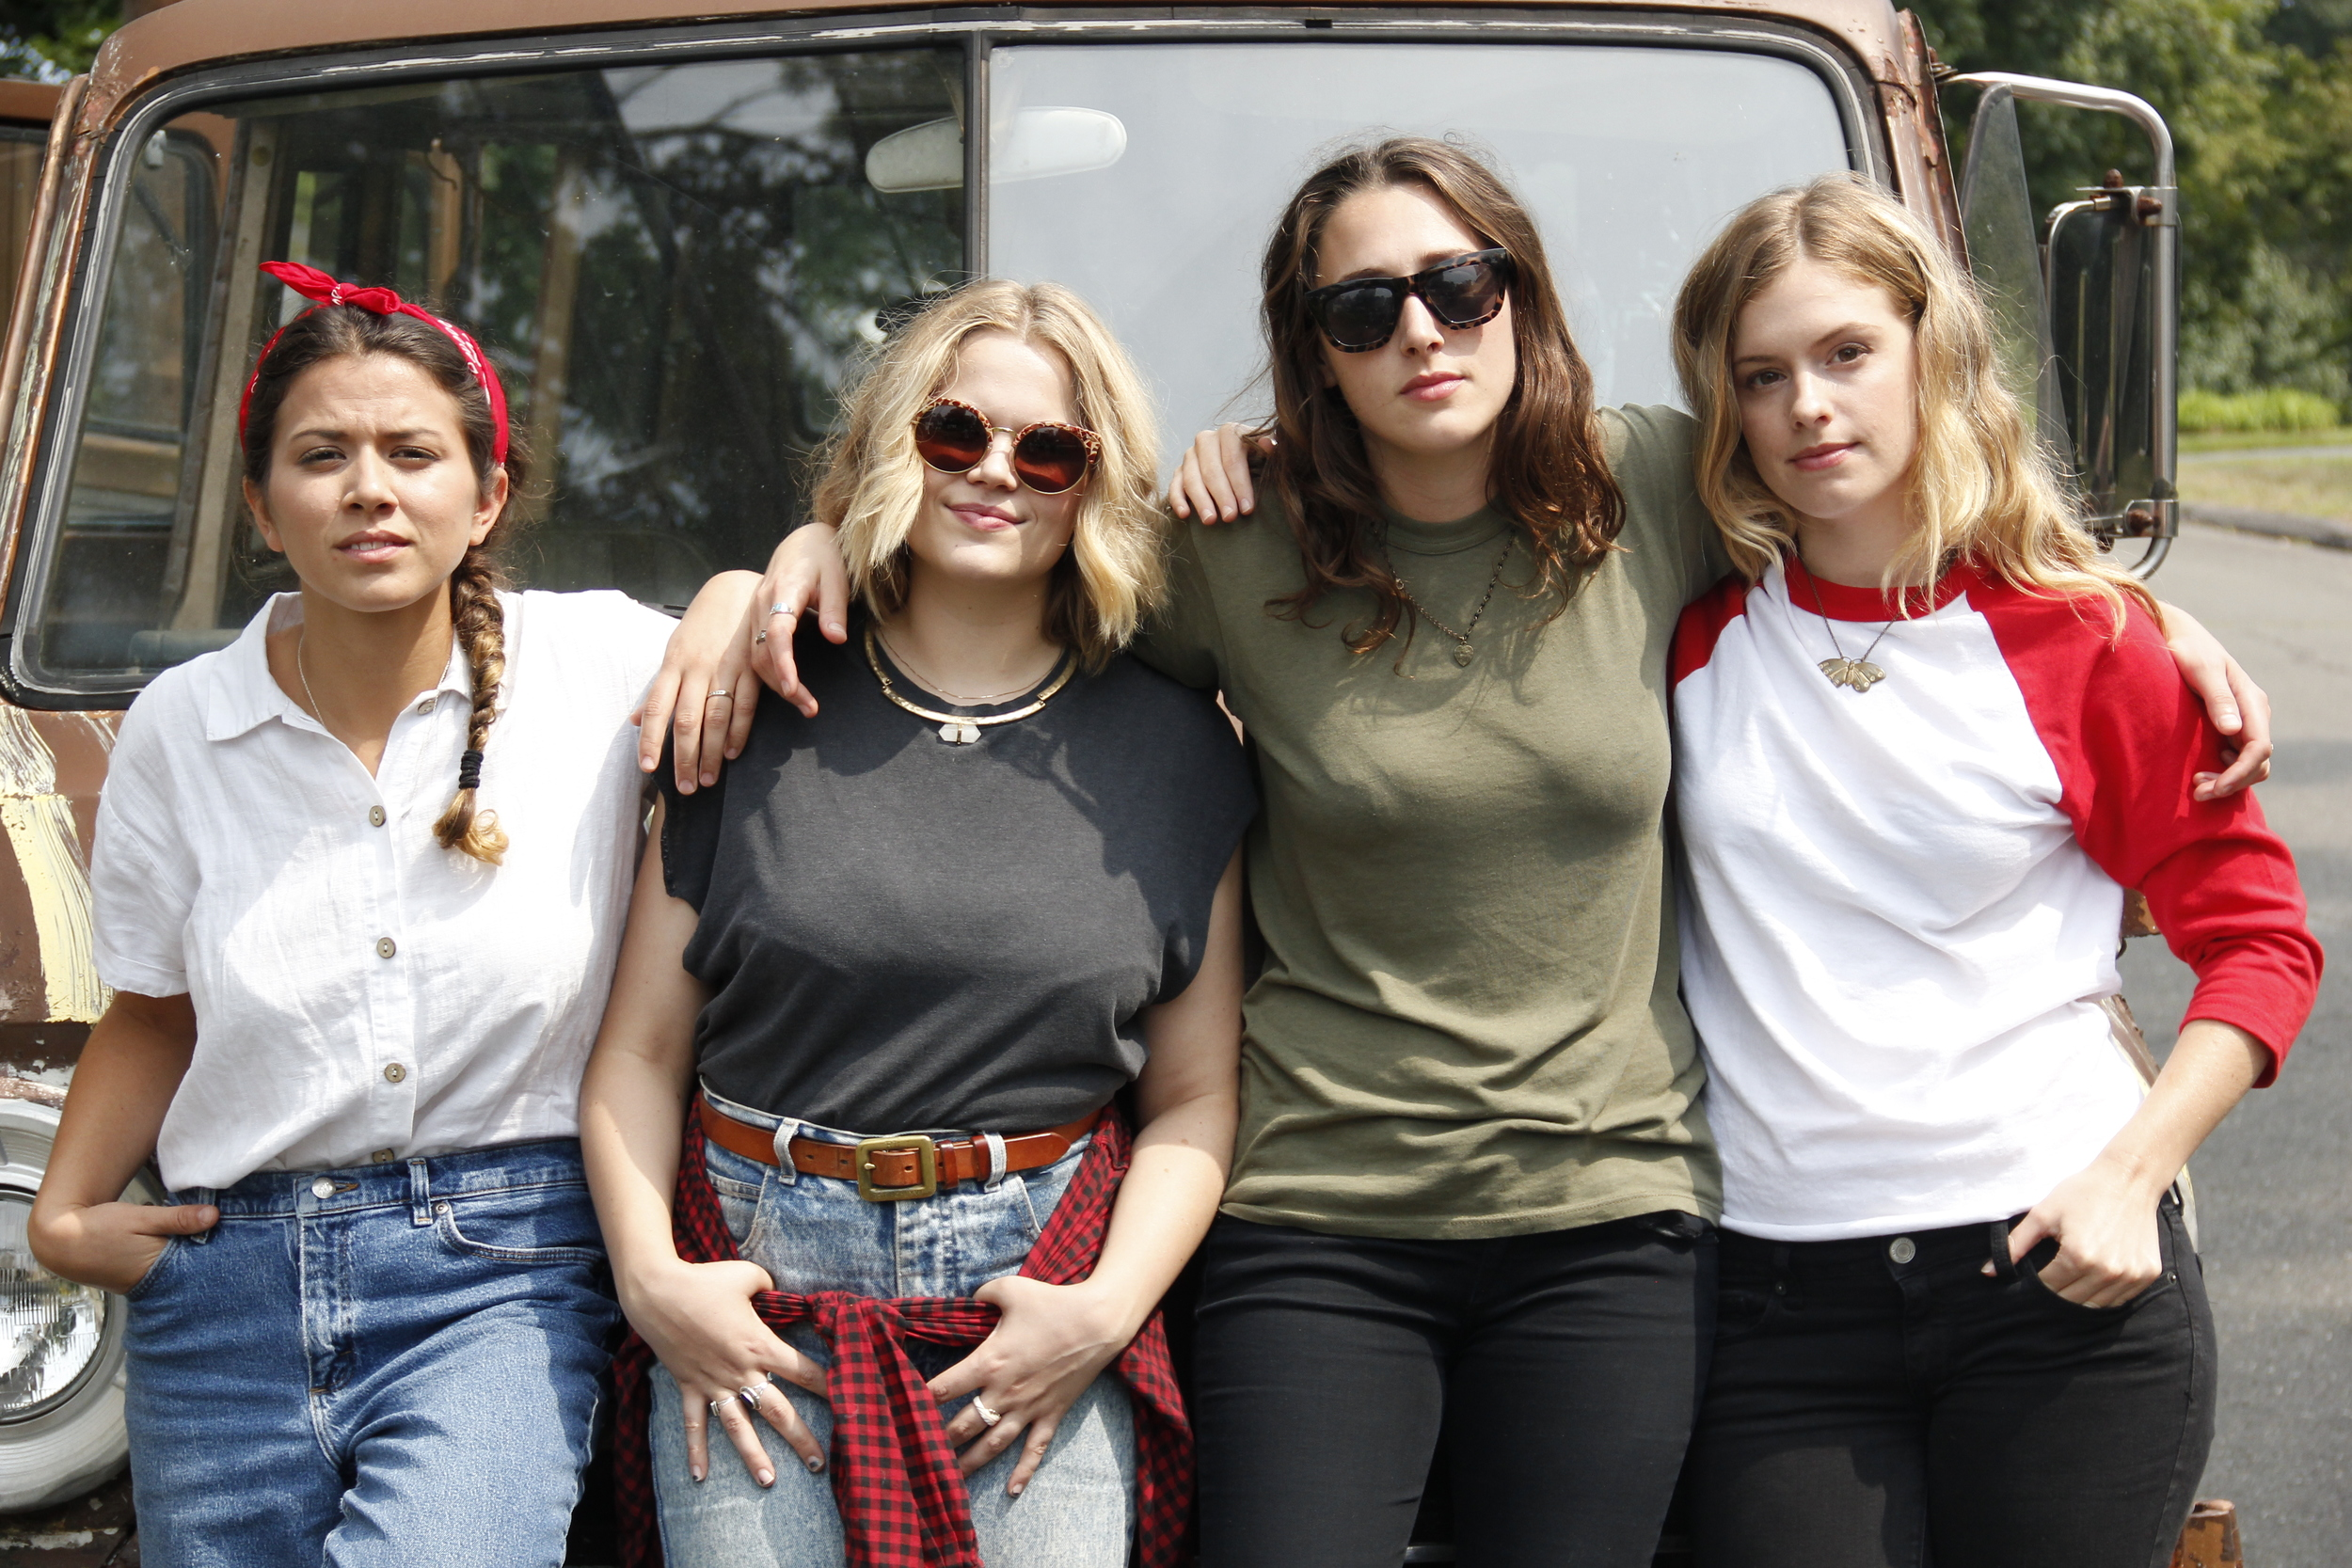 Actresses (L-R) Danielle Guido, Jane Bruce, Sam Quartin, and Devon Werden on the set of  Noah and the Band  in August 2015.